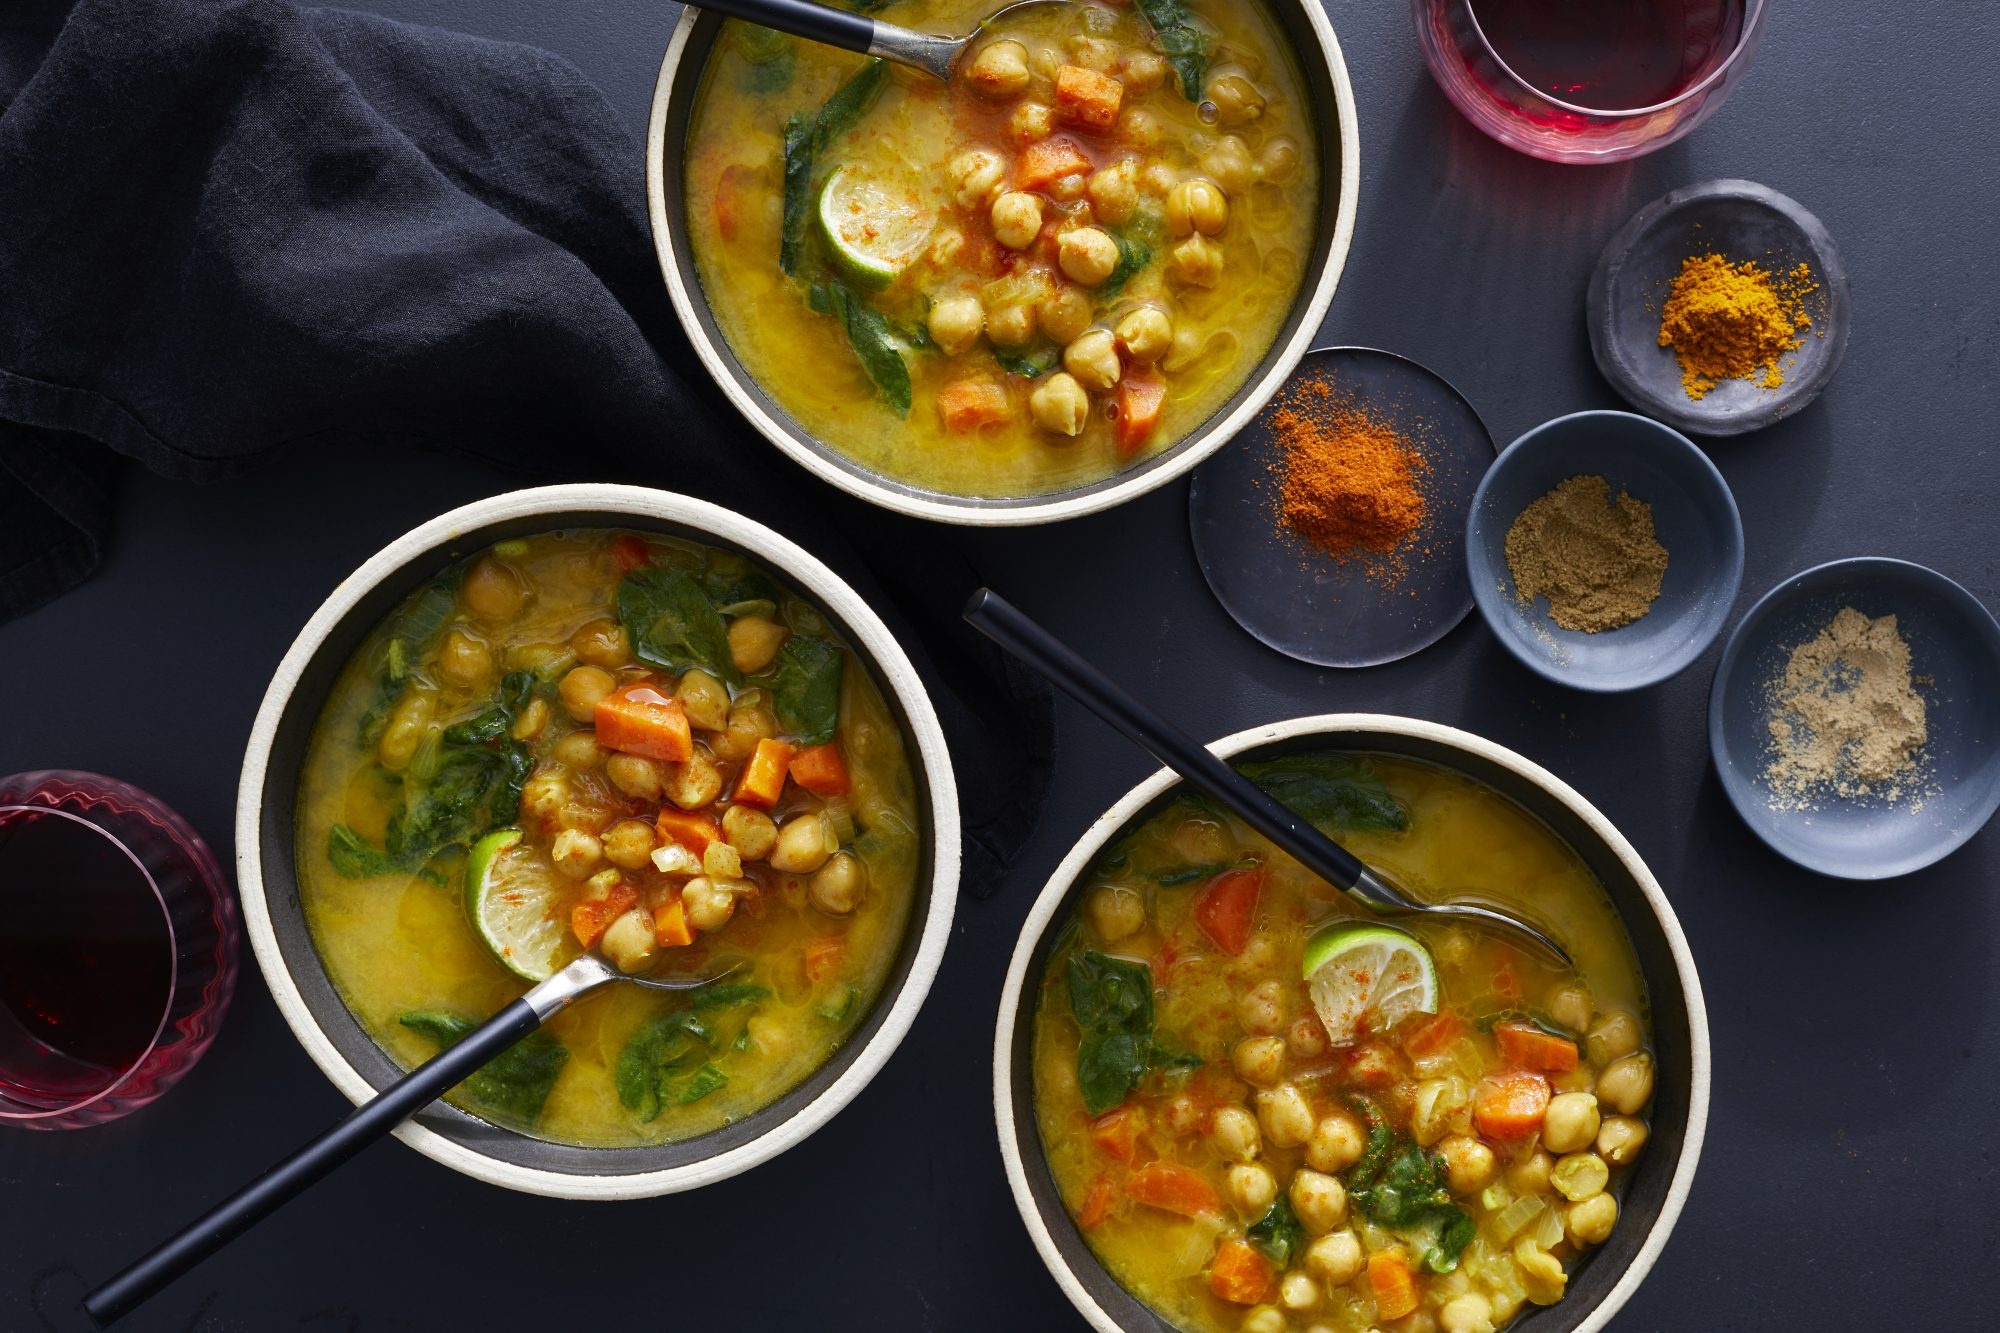 Morocaan Chickpea Soup